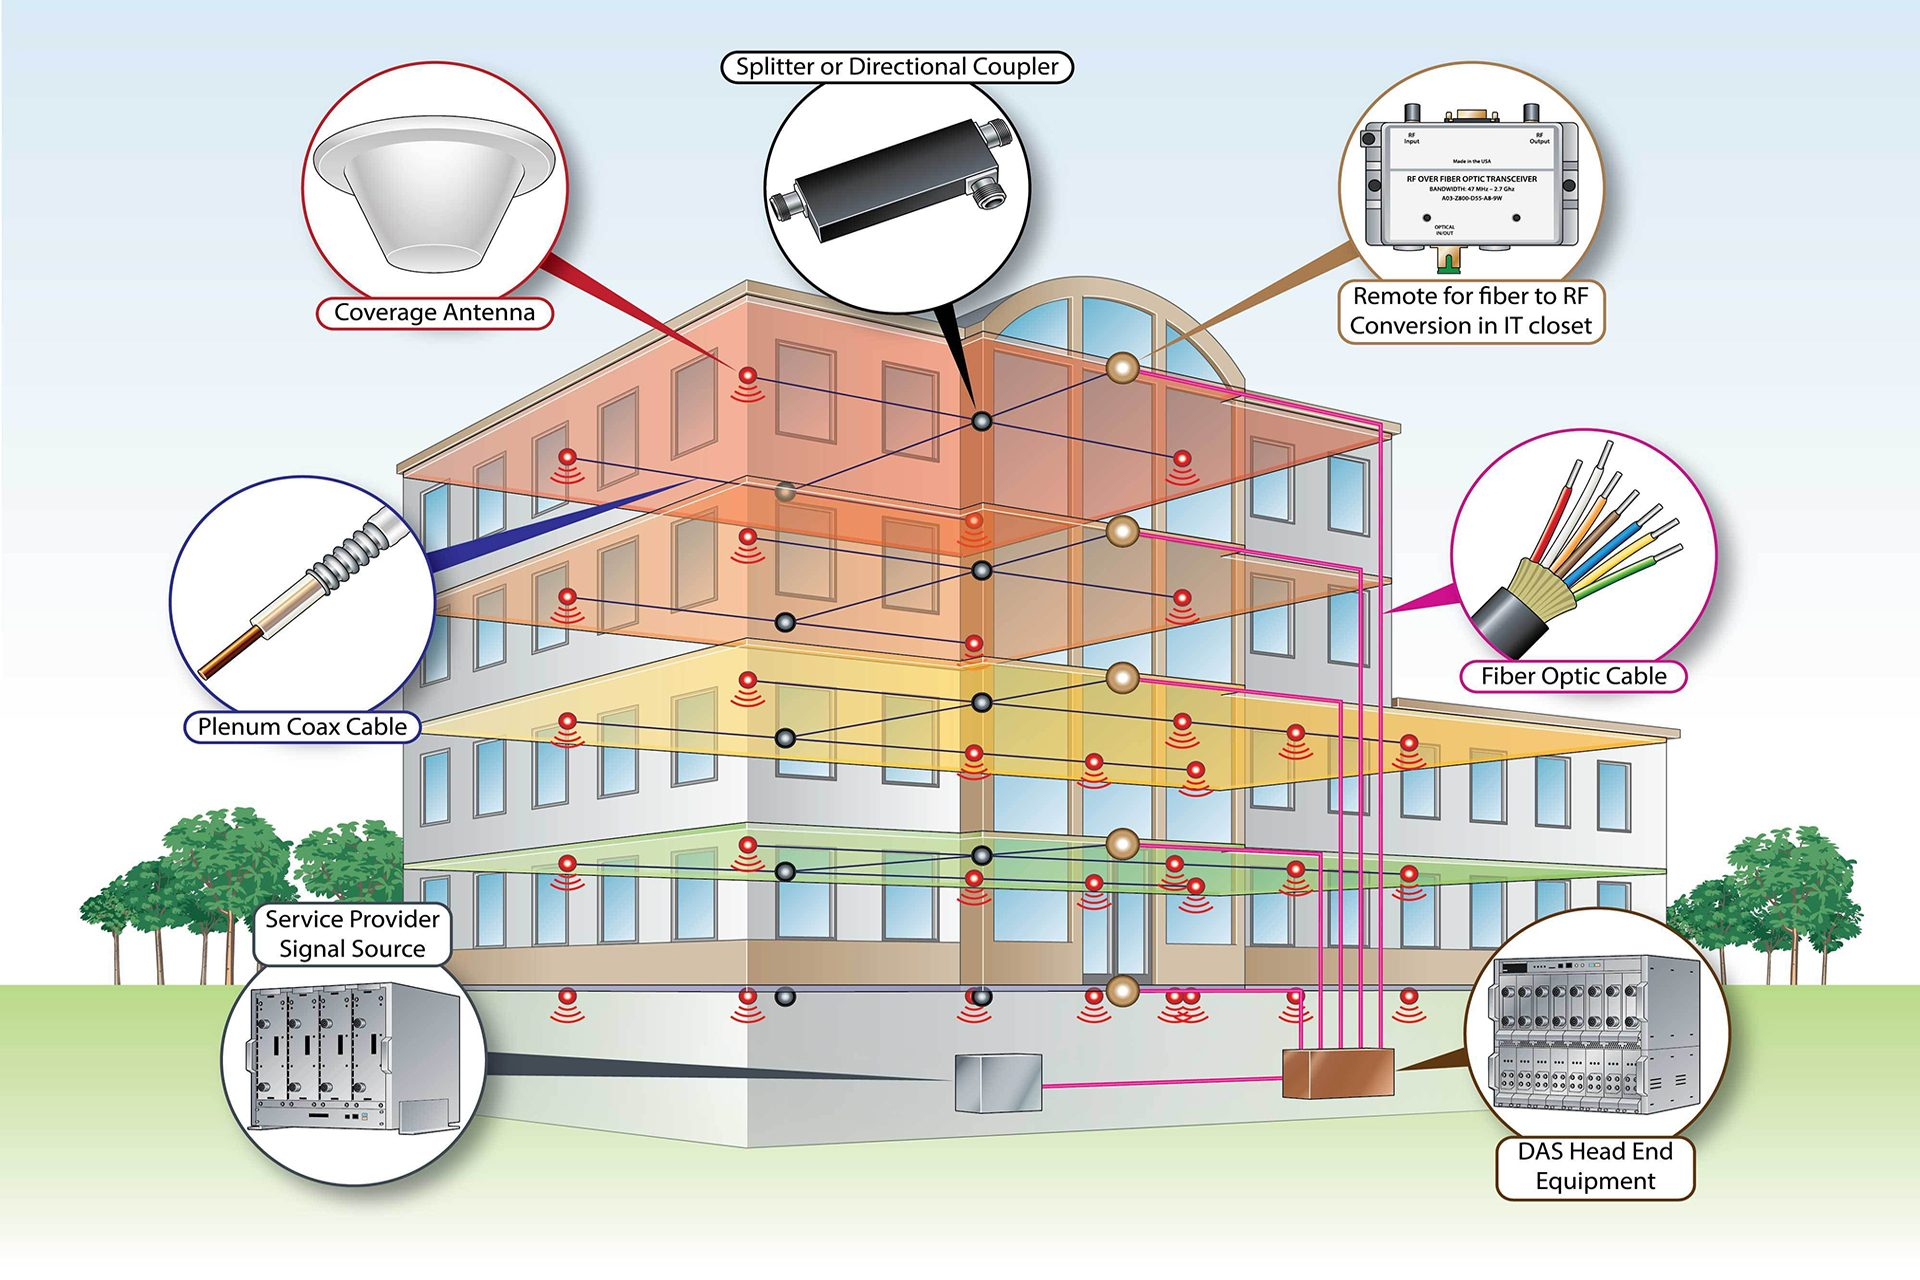 Above is an illustration of a large distribution system covering a building in which dozens of interior antennas are interconnected via fiber, coaxial and category cabling to provide even distribution of cellular signal.  Most such systems are scalable and can start from very modest to very extensive coverage.